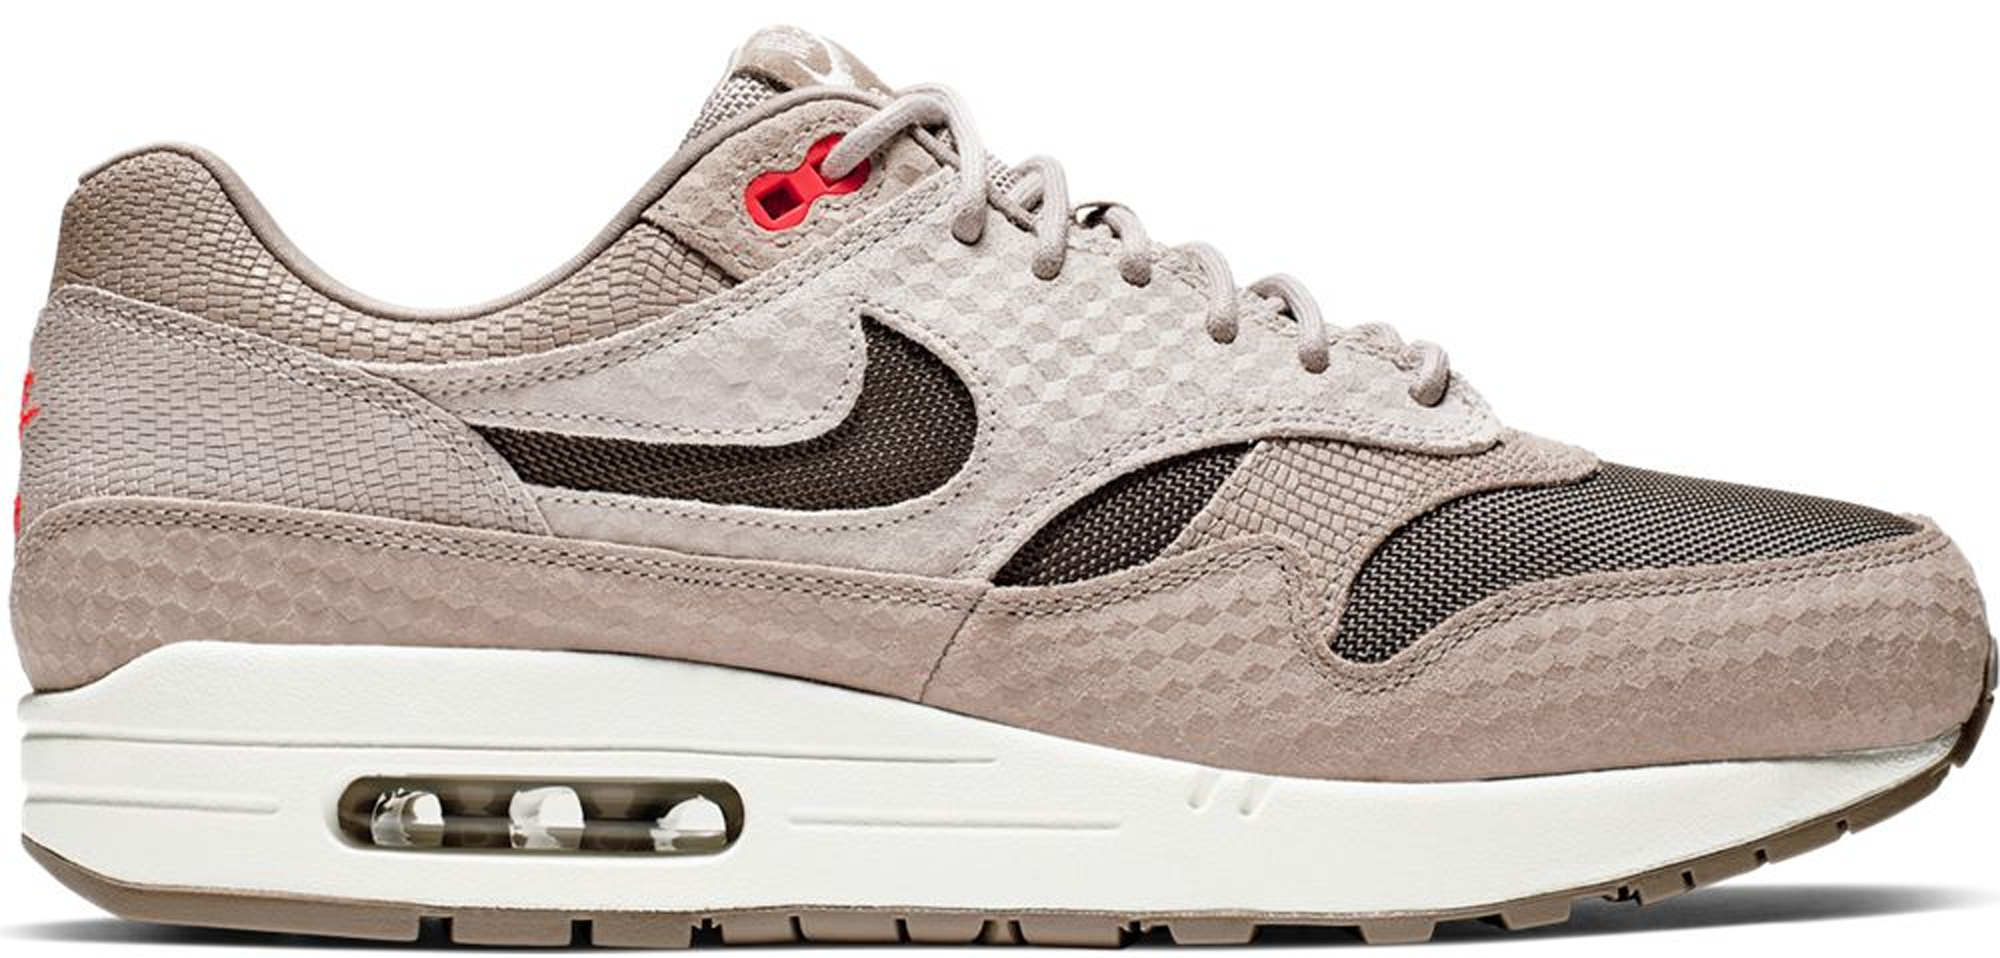 Pre-owned Nike Air Max 1 Cut Out Swoosh